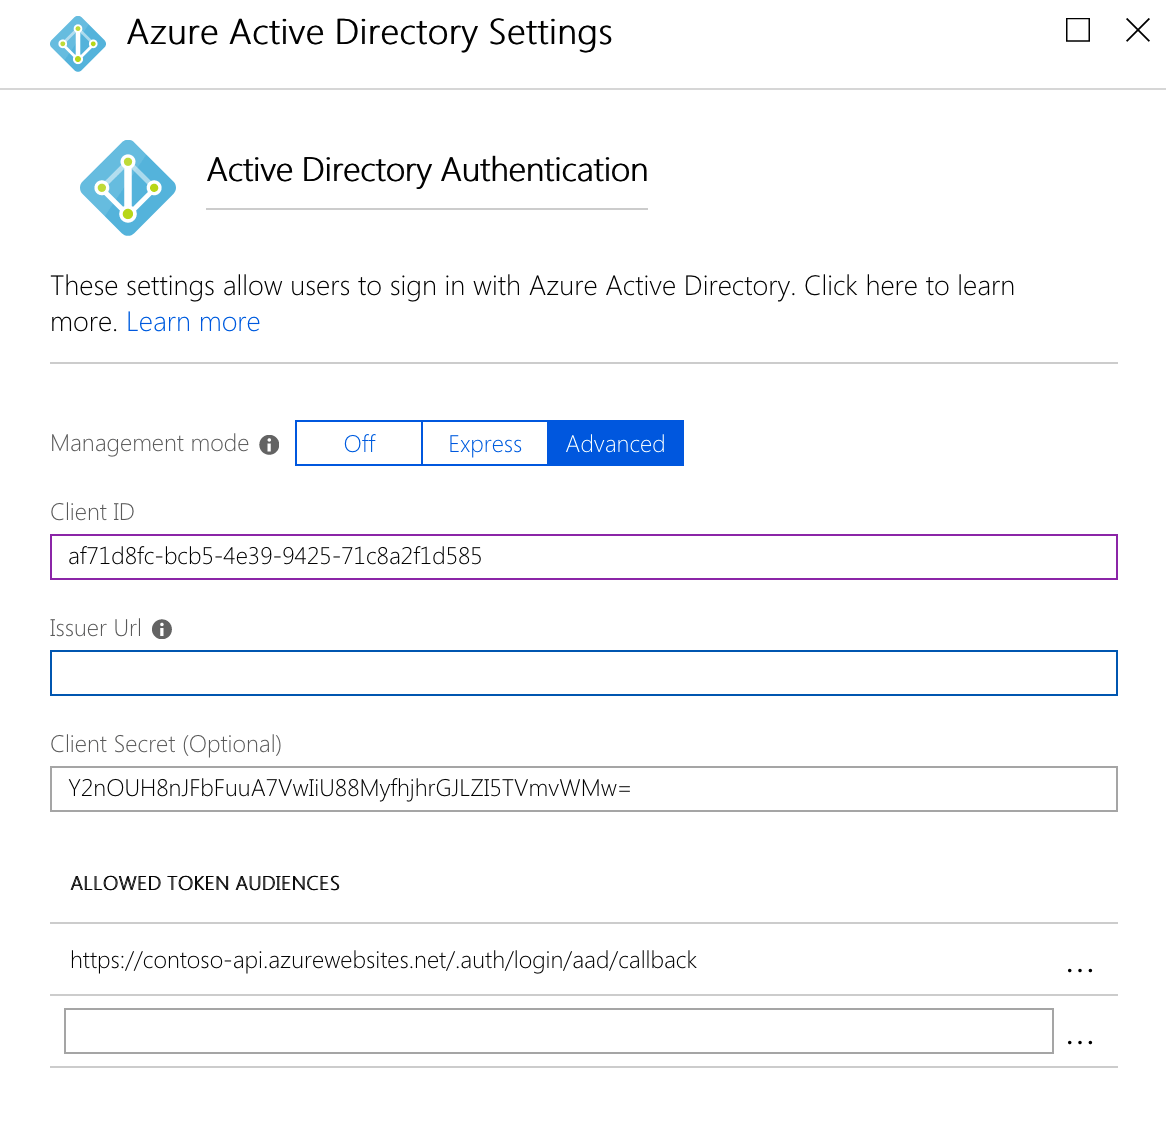 Empty Issuer URL property for an Azure AD application